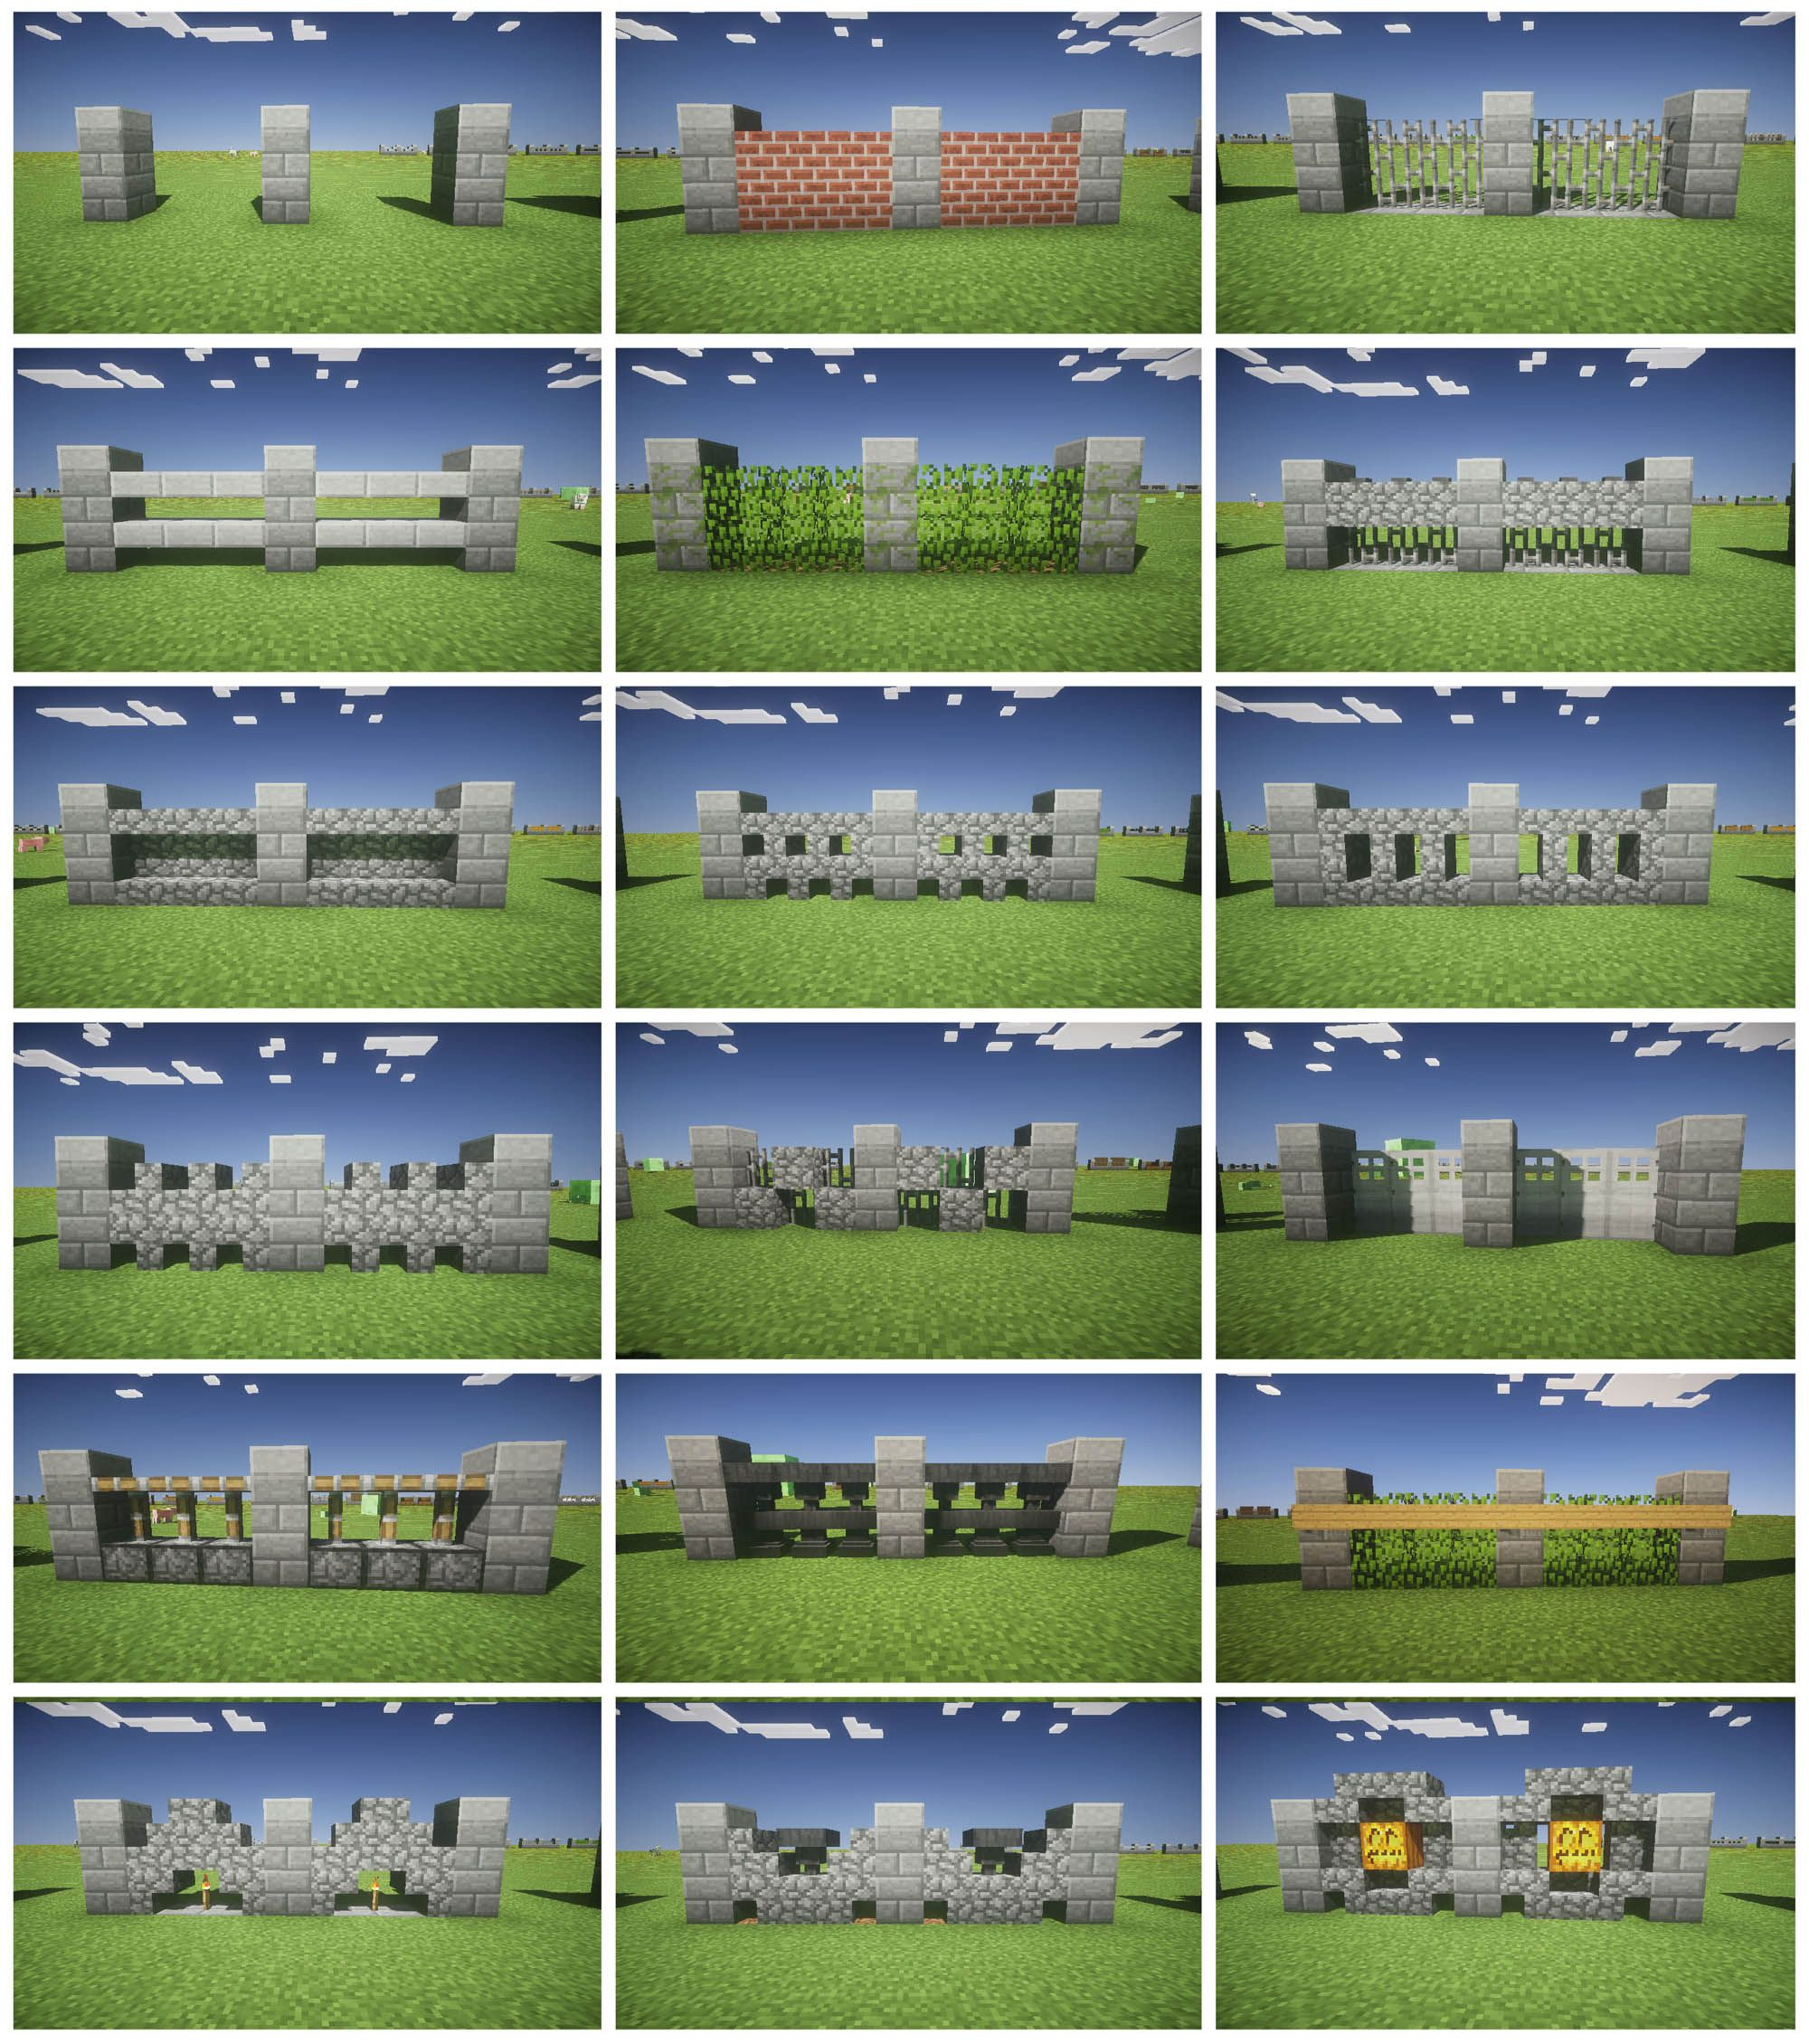 Minecraft Fence Design Minecraft Plans Minecraft Garden